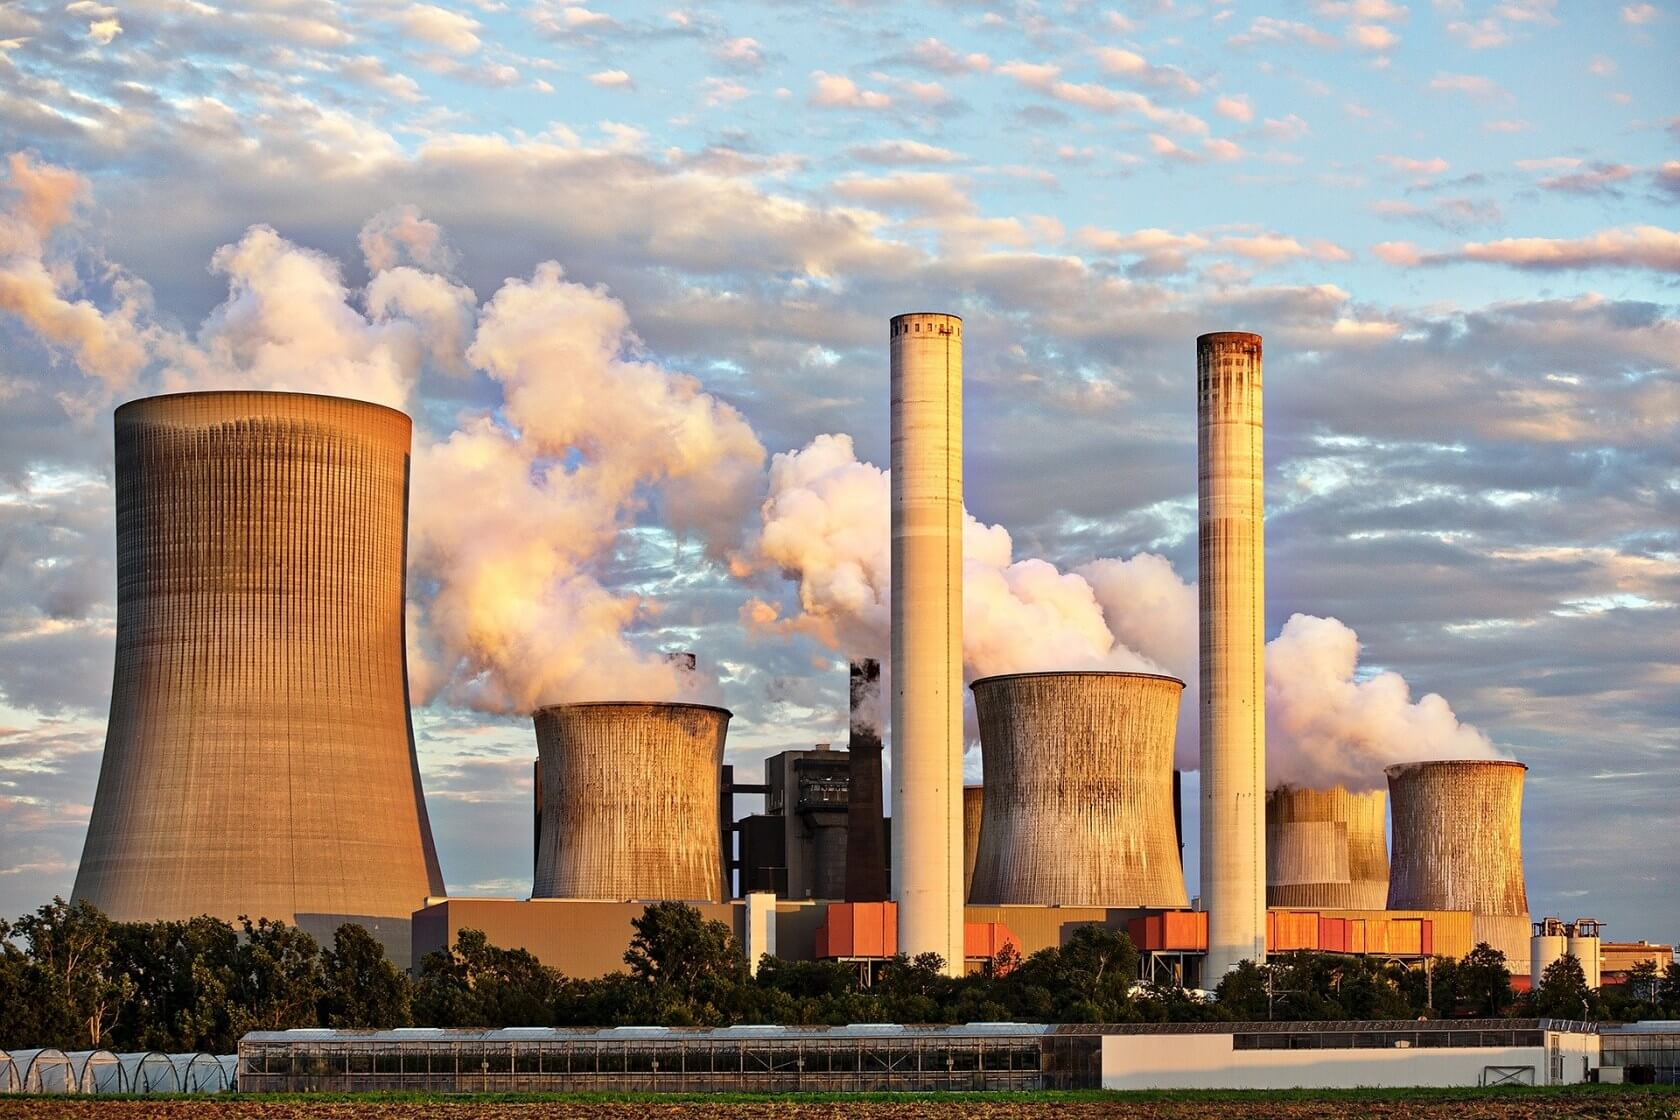 CO2 emissions from existing energy infrastructure could see temperatures rise by over 1.5C